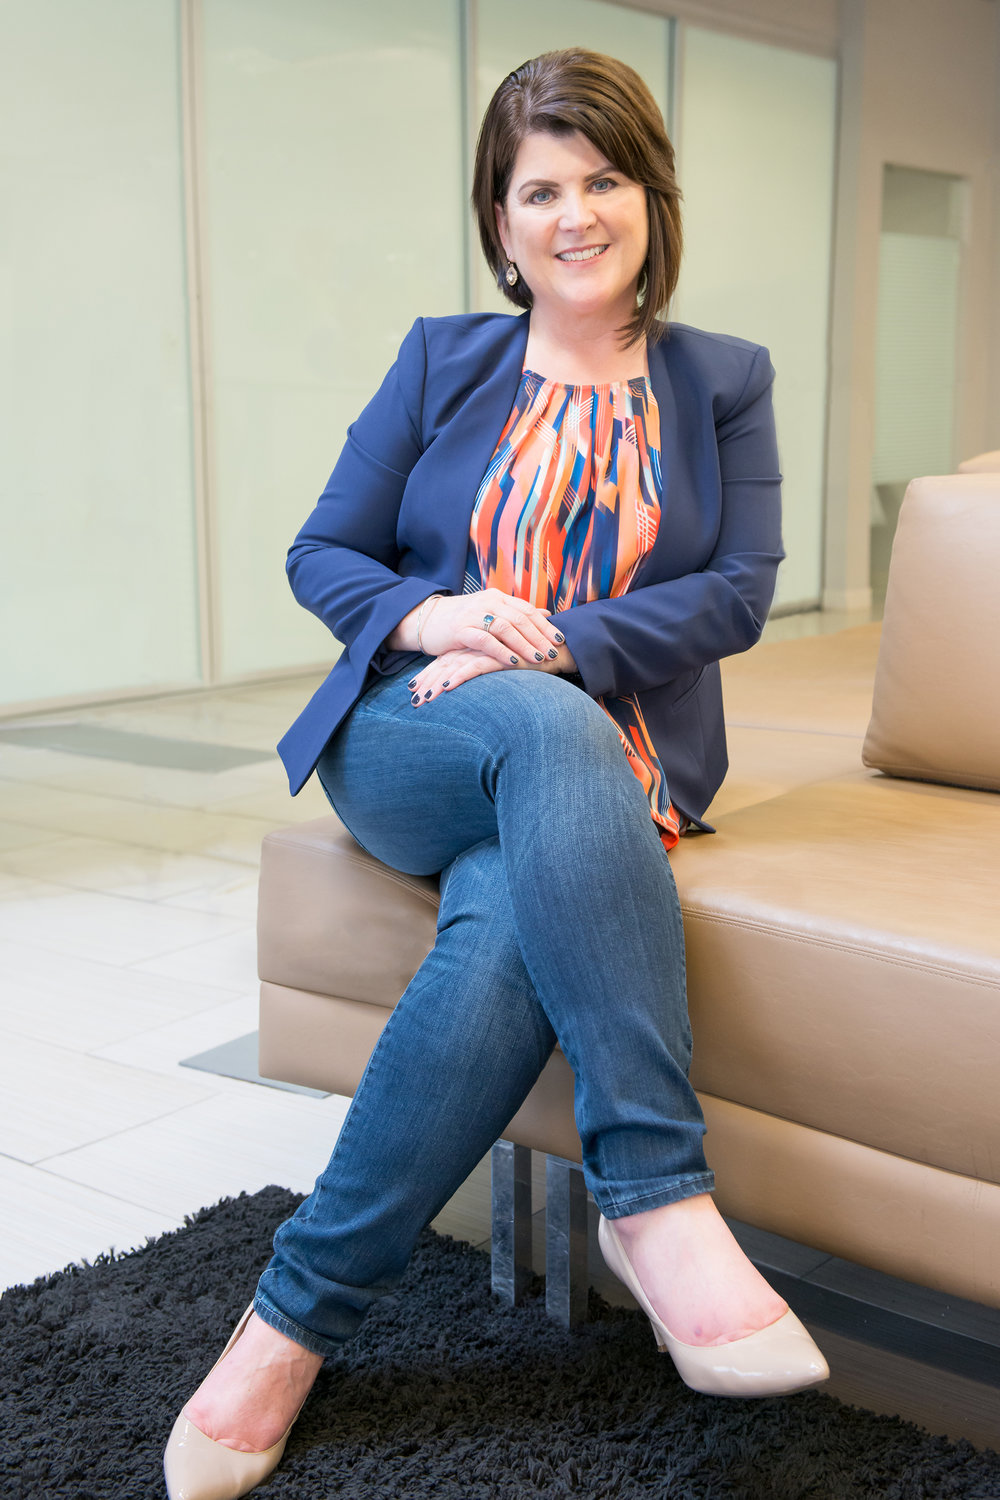 Ginny Hegarty  Location portrait for her consulting business.